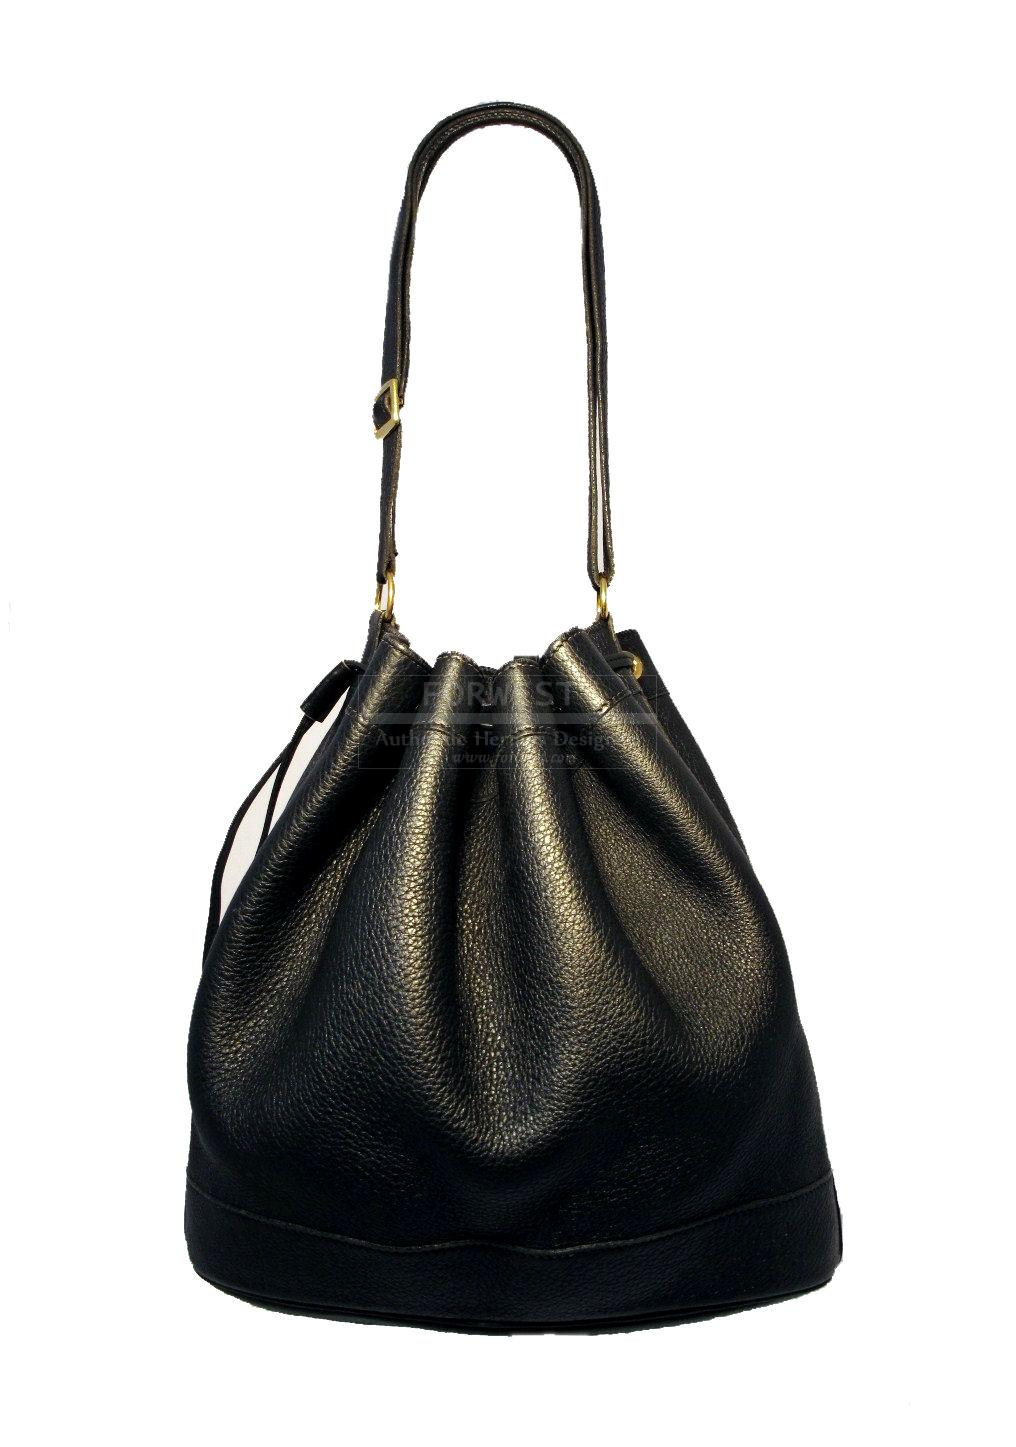 Hermes quotmarket quotBlack Leather Drawstring Bucket Shoulder Bag